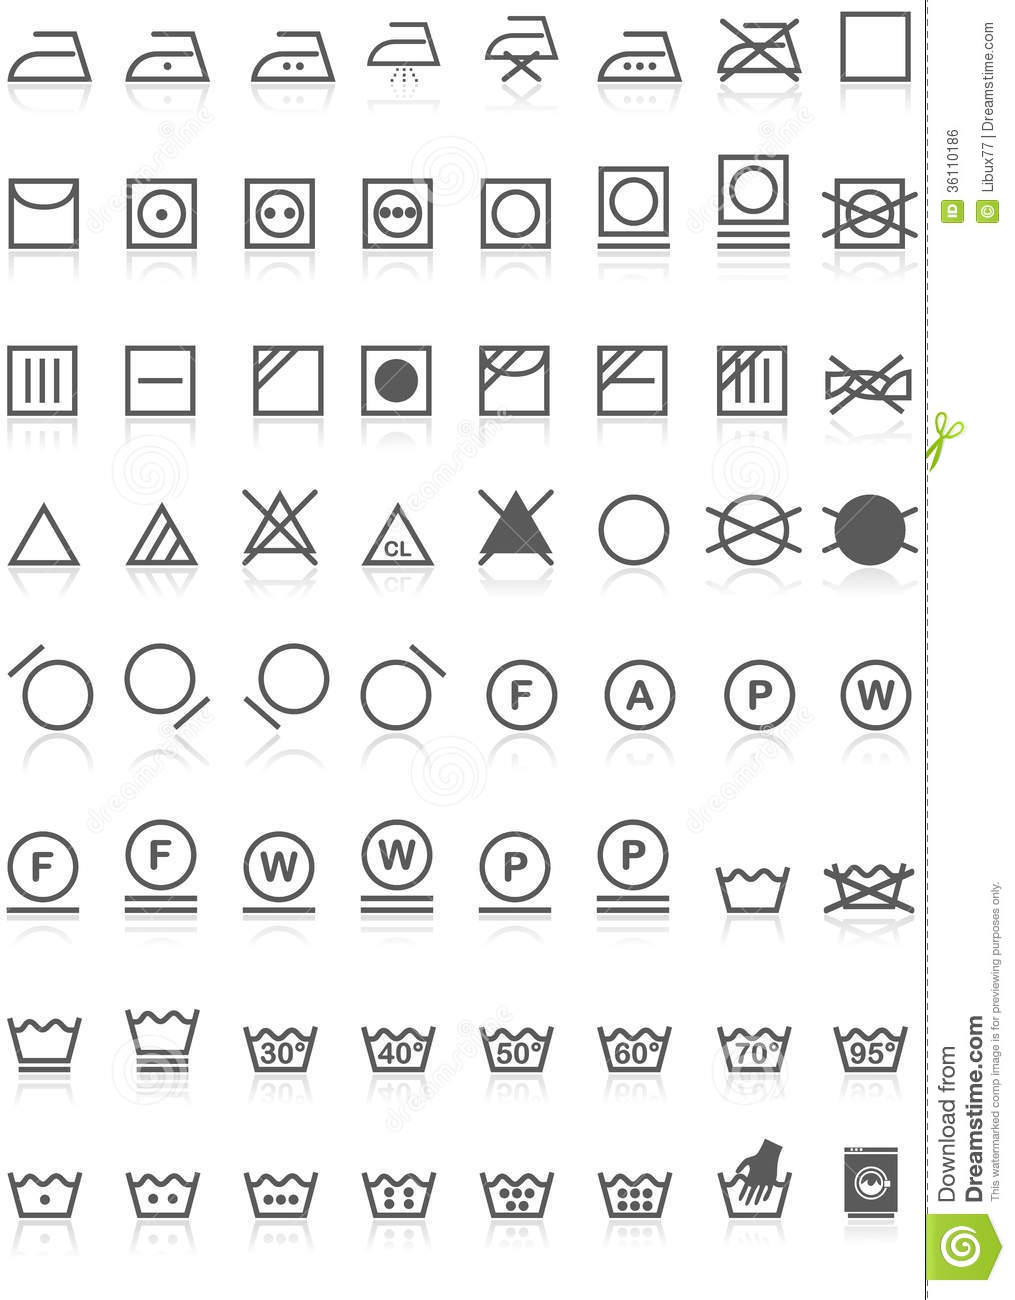 Laundry icons collection black on white stock vector illustration laundry icons collection black on white biocorpaavc Image collections